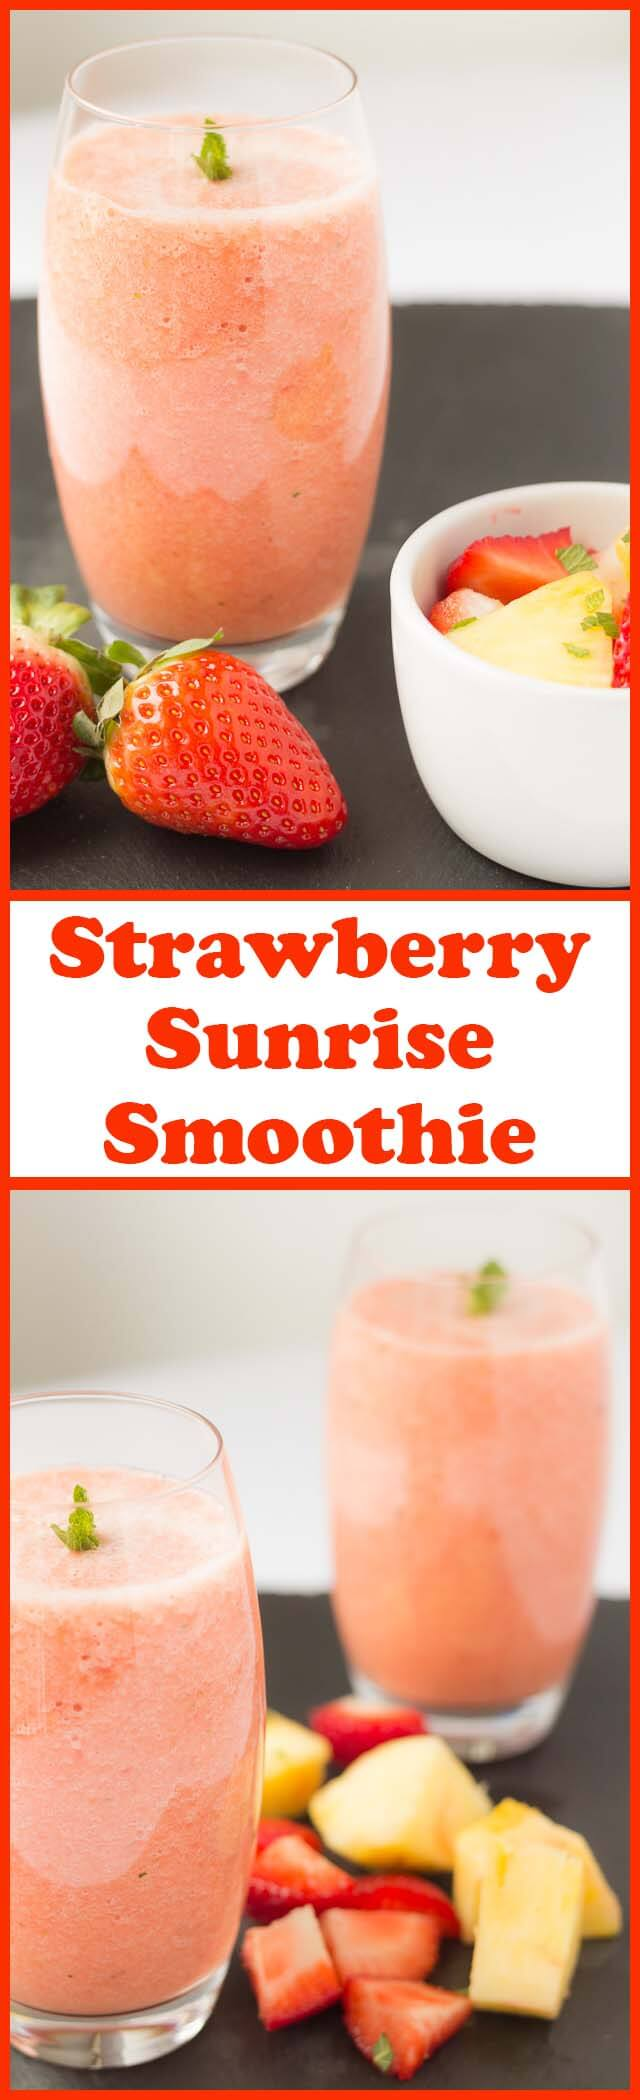 This strawberry sunrise smoothie will give you that energy boost you need to help wake you up in the morning. Nutritious, delicious and packed full of vitamin C its sure to give you that extra glow!